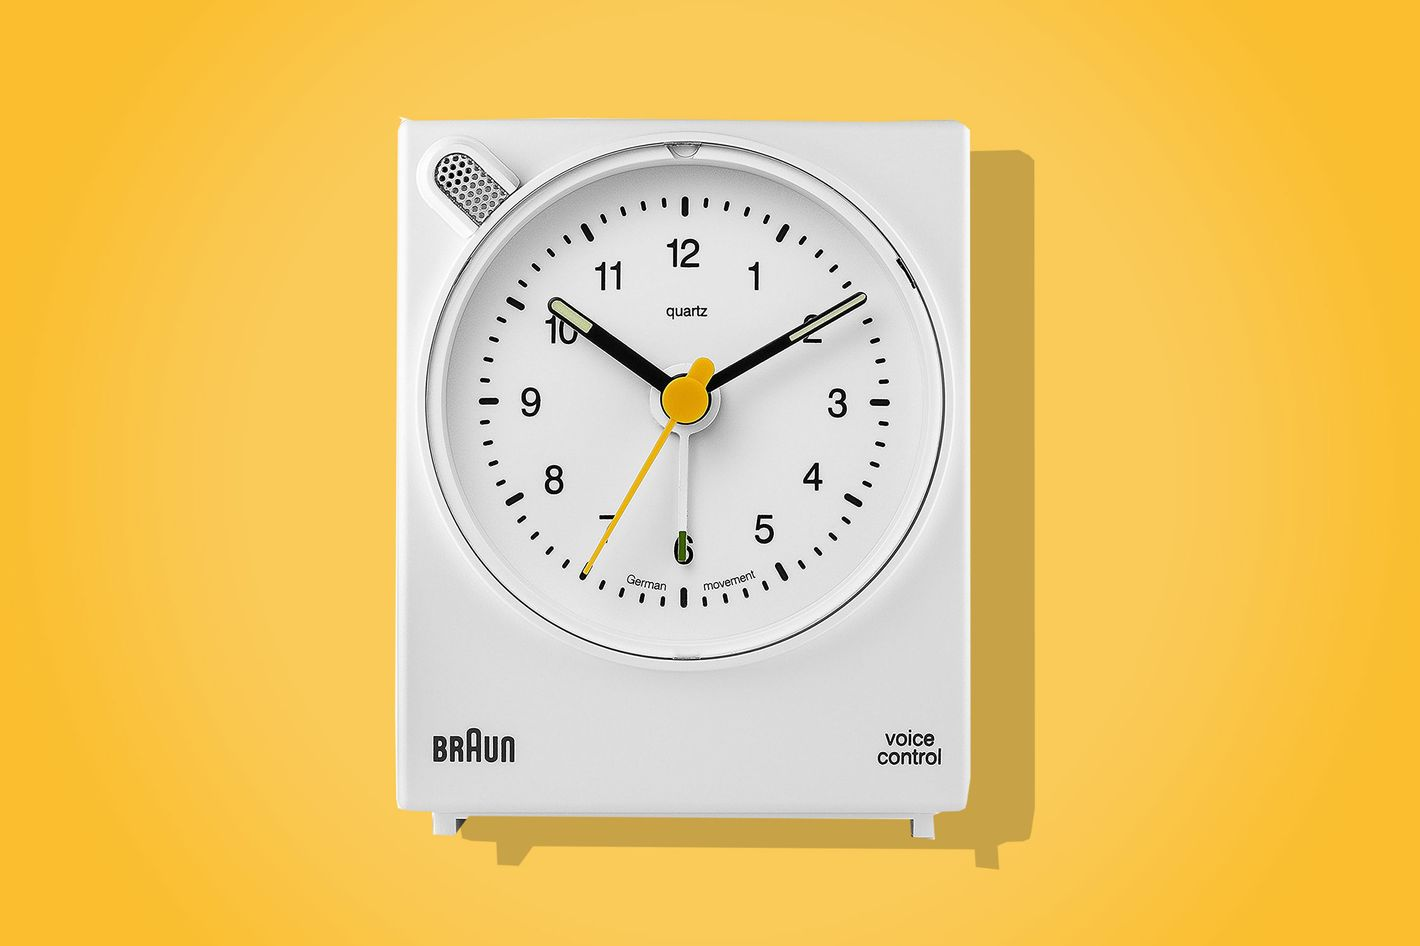 The Best Voice Activated Controlled Alarm Clock Braun Review